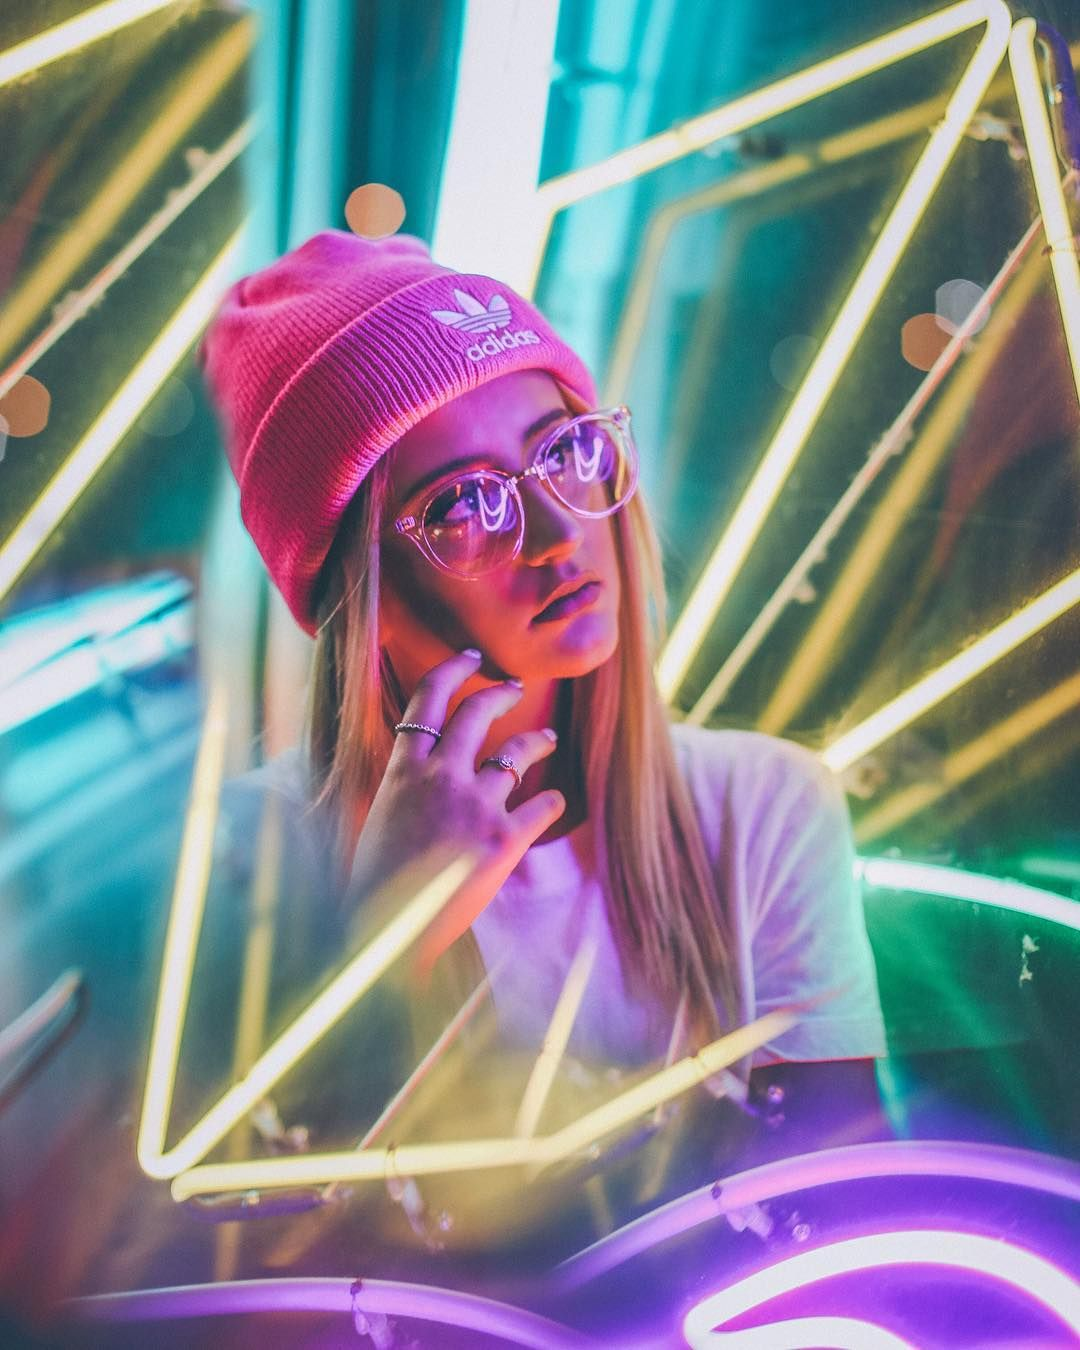 Neon Light Portrait On Behance: Night Neon Portrait Photography By Thedreamerseye